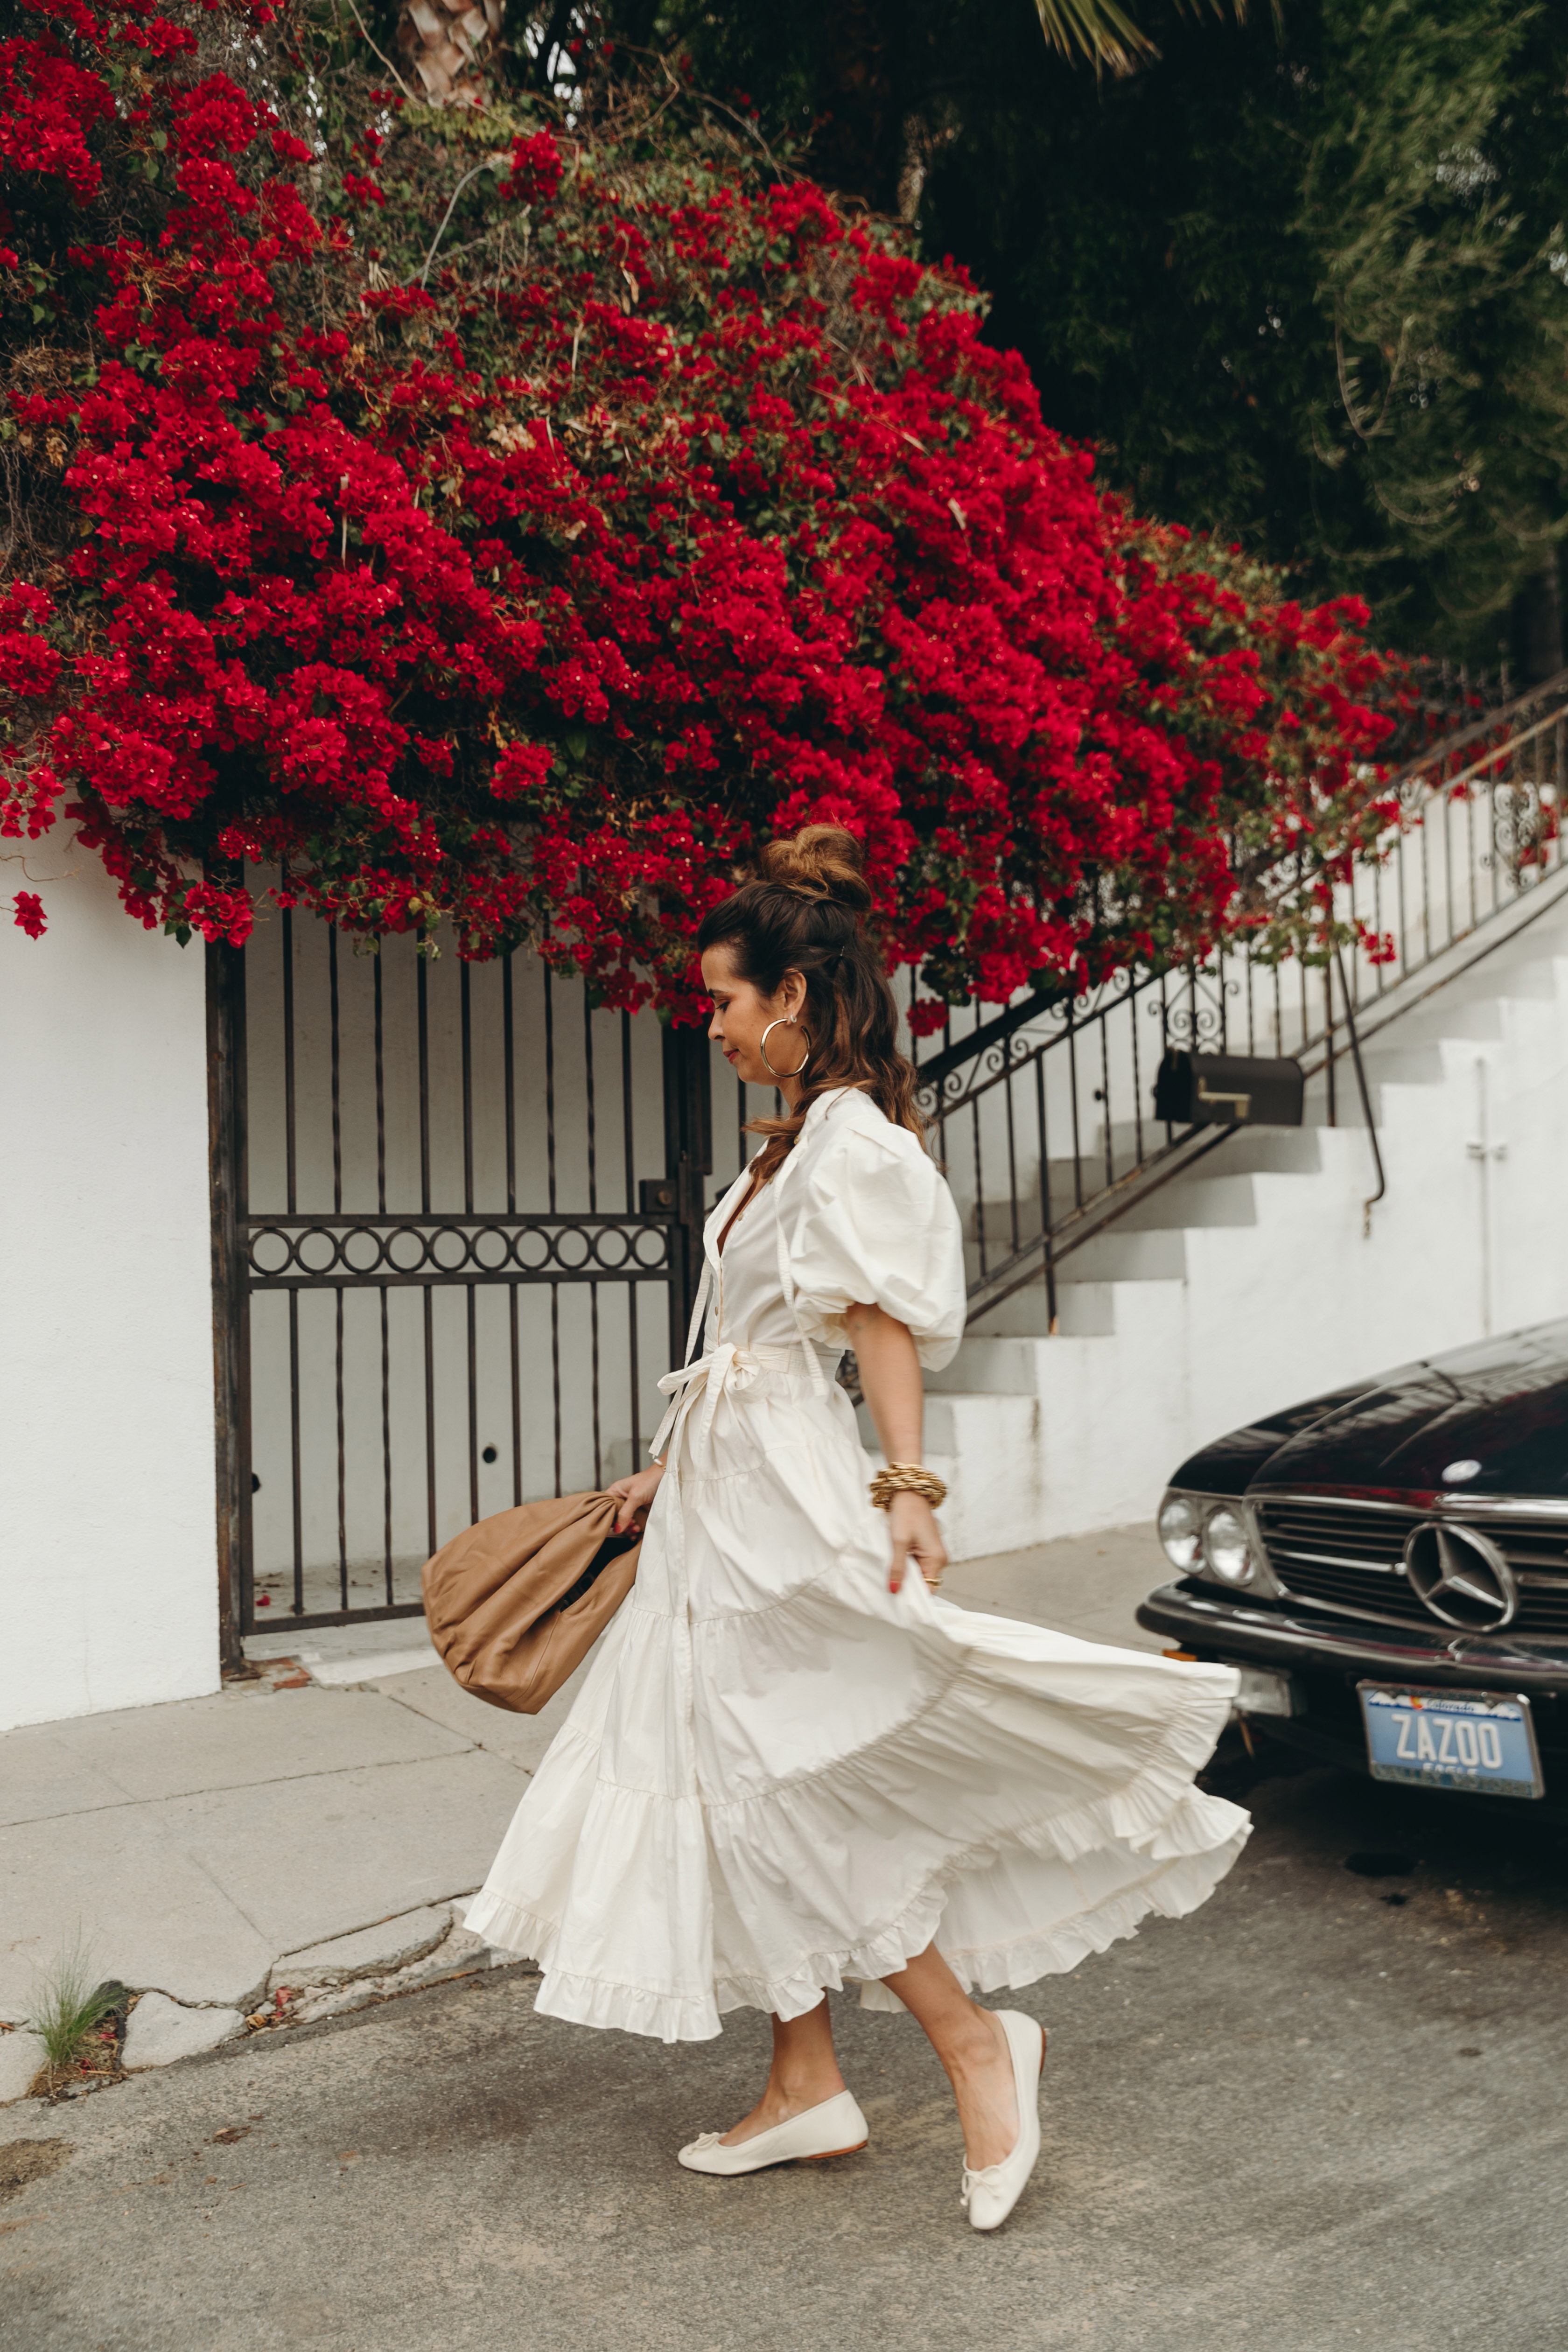 Sara from Collage Vintage wearing a Ulla Johnson white midi-dress and a Cleobella bag in natural color